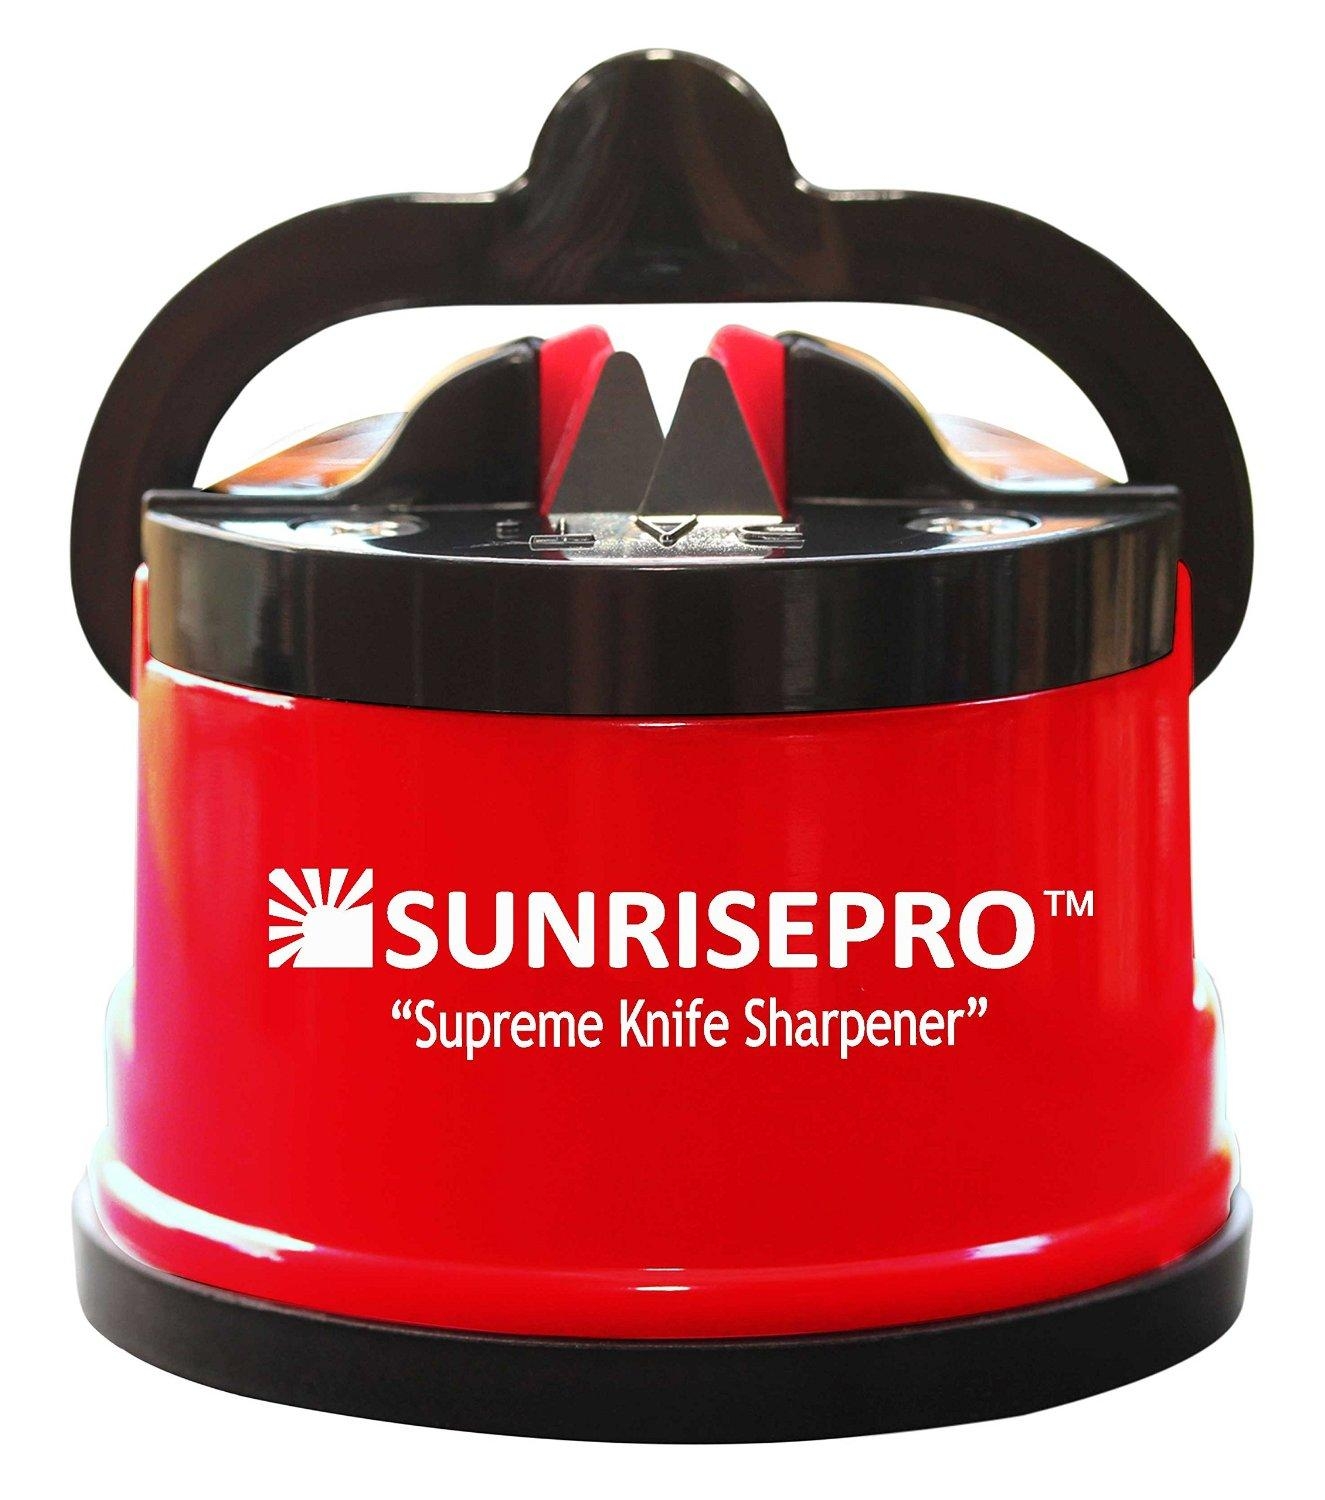 SunrisePro Knife Sharpener Review